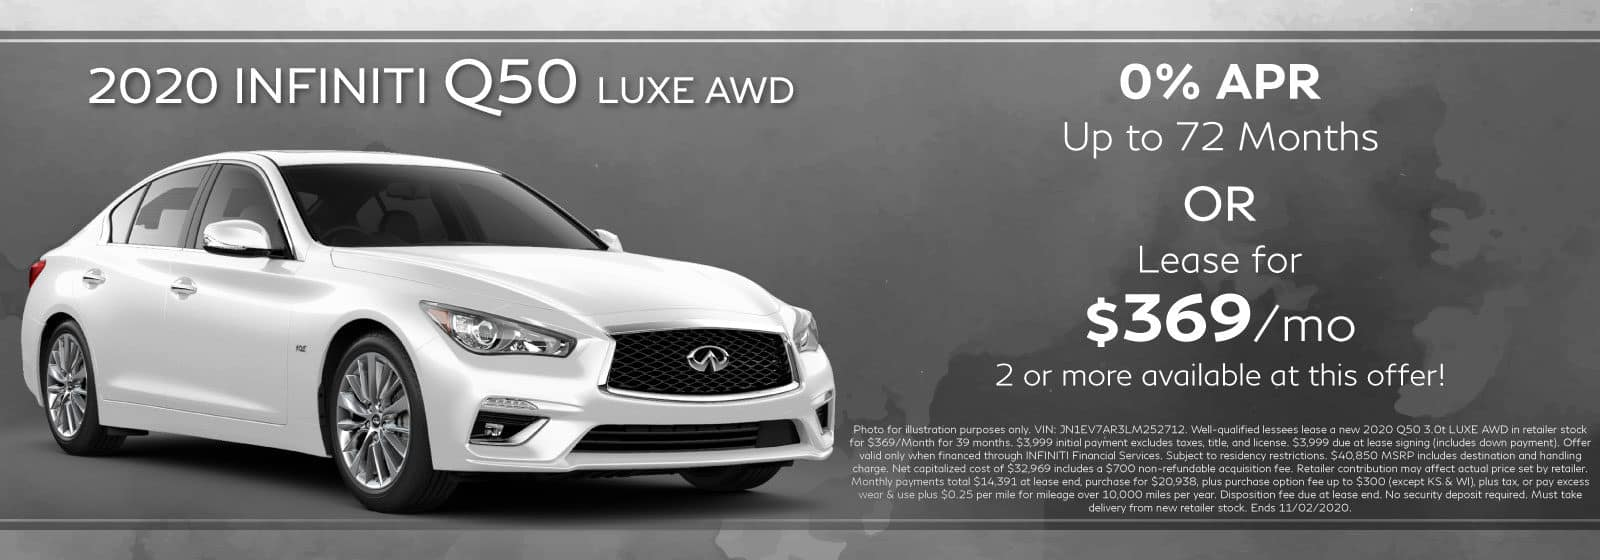 2020 Q50 Luxe. Lease for $369/Month or 0% APR for up to 72 Months. White Q50 with abstract background